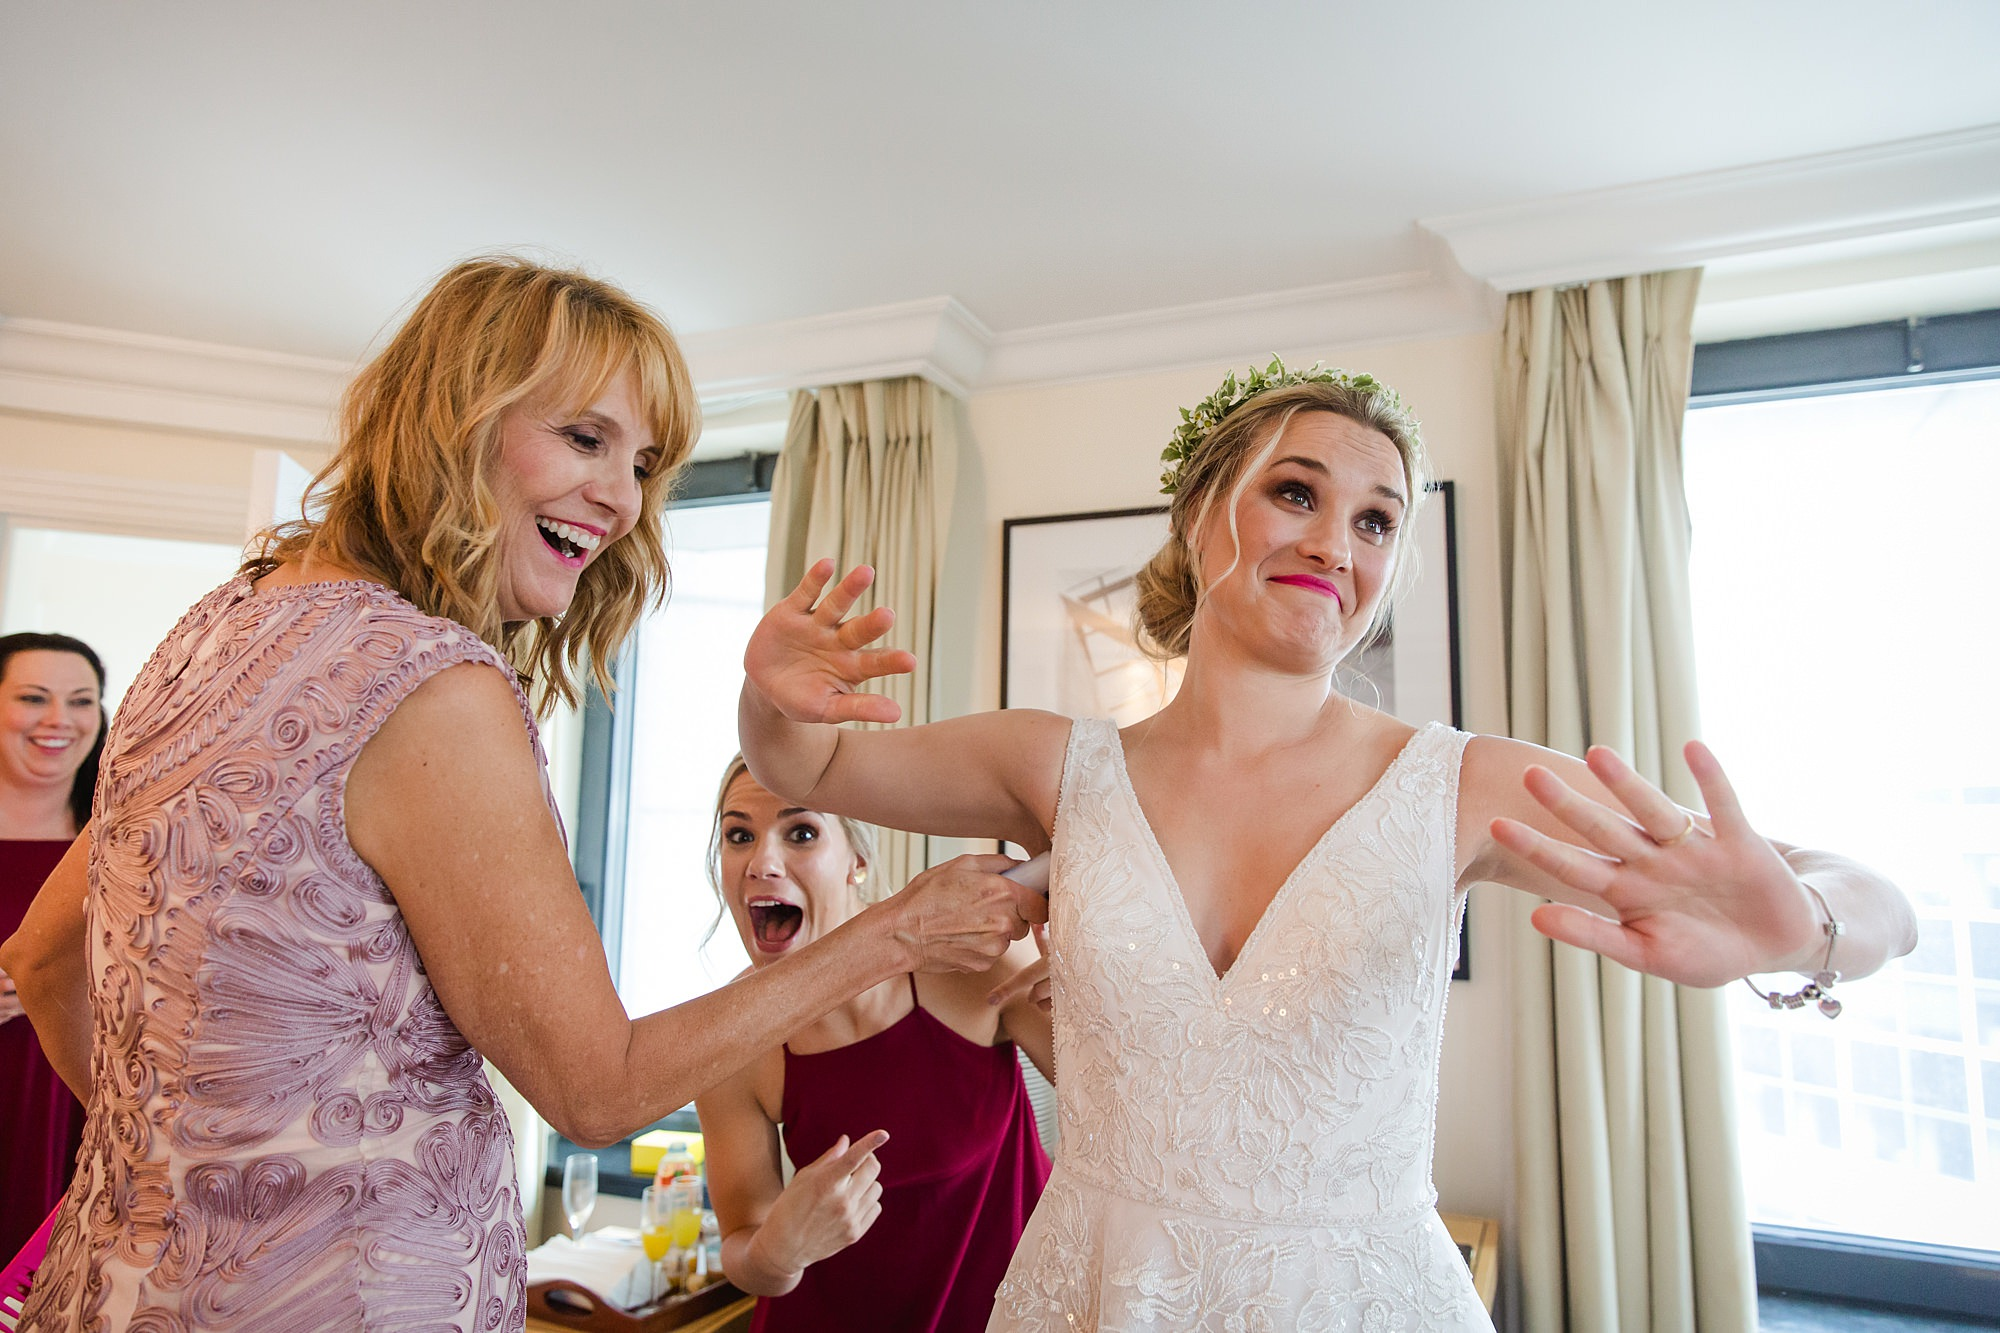 funny image of bride's mum helping her with deodorant